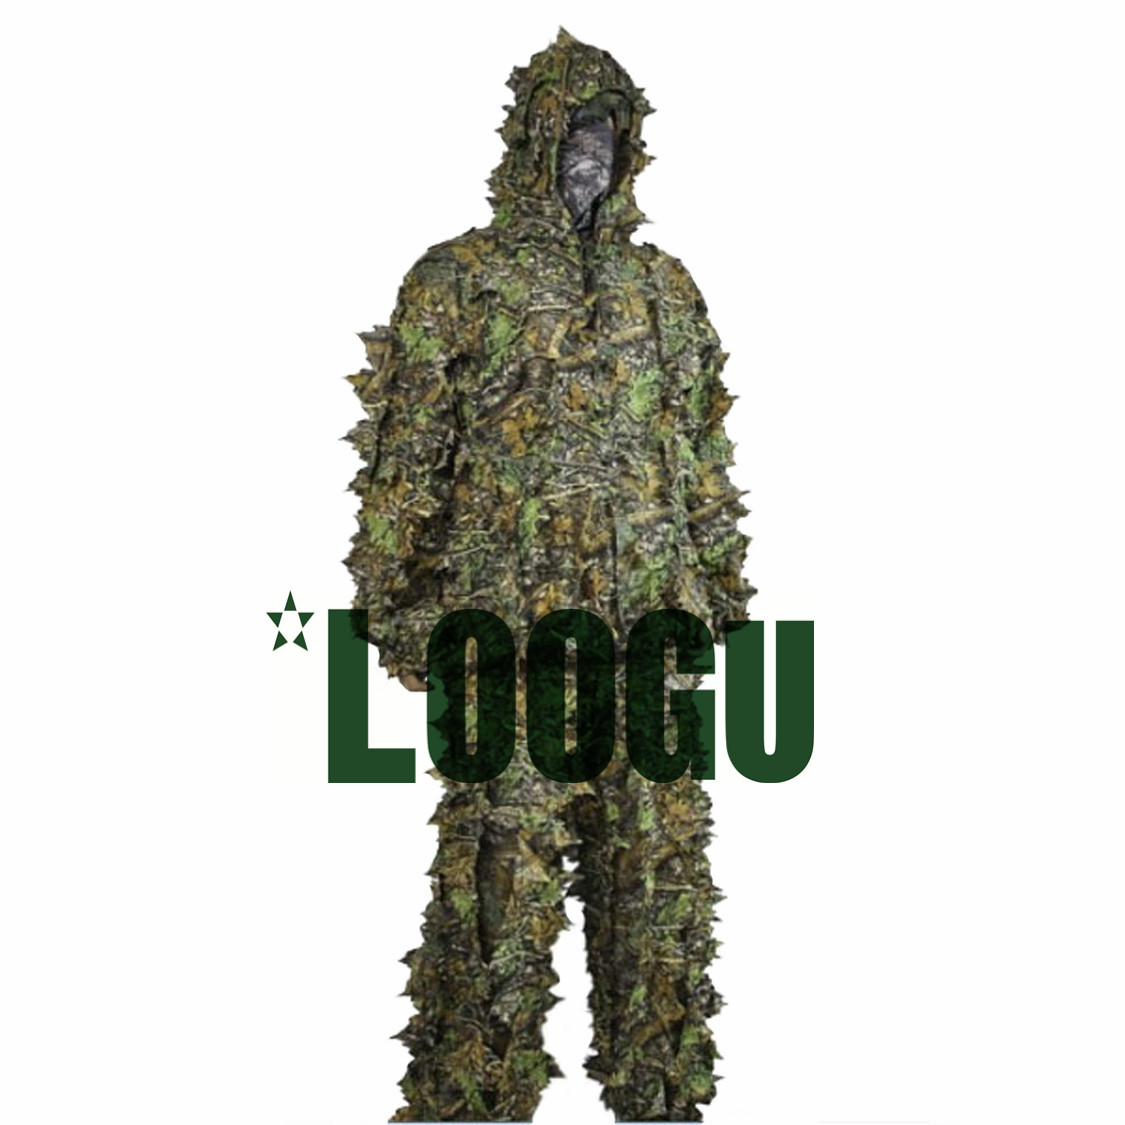 7af1641b226 LOOGU Outdoor Woodland camouflage tactical camo ghillie suit Kit Cloak  Military 3D Leaf Jungle Hunting camouflage